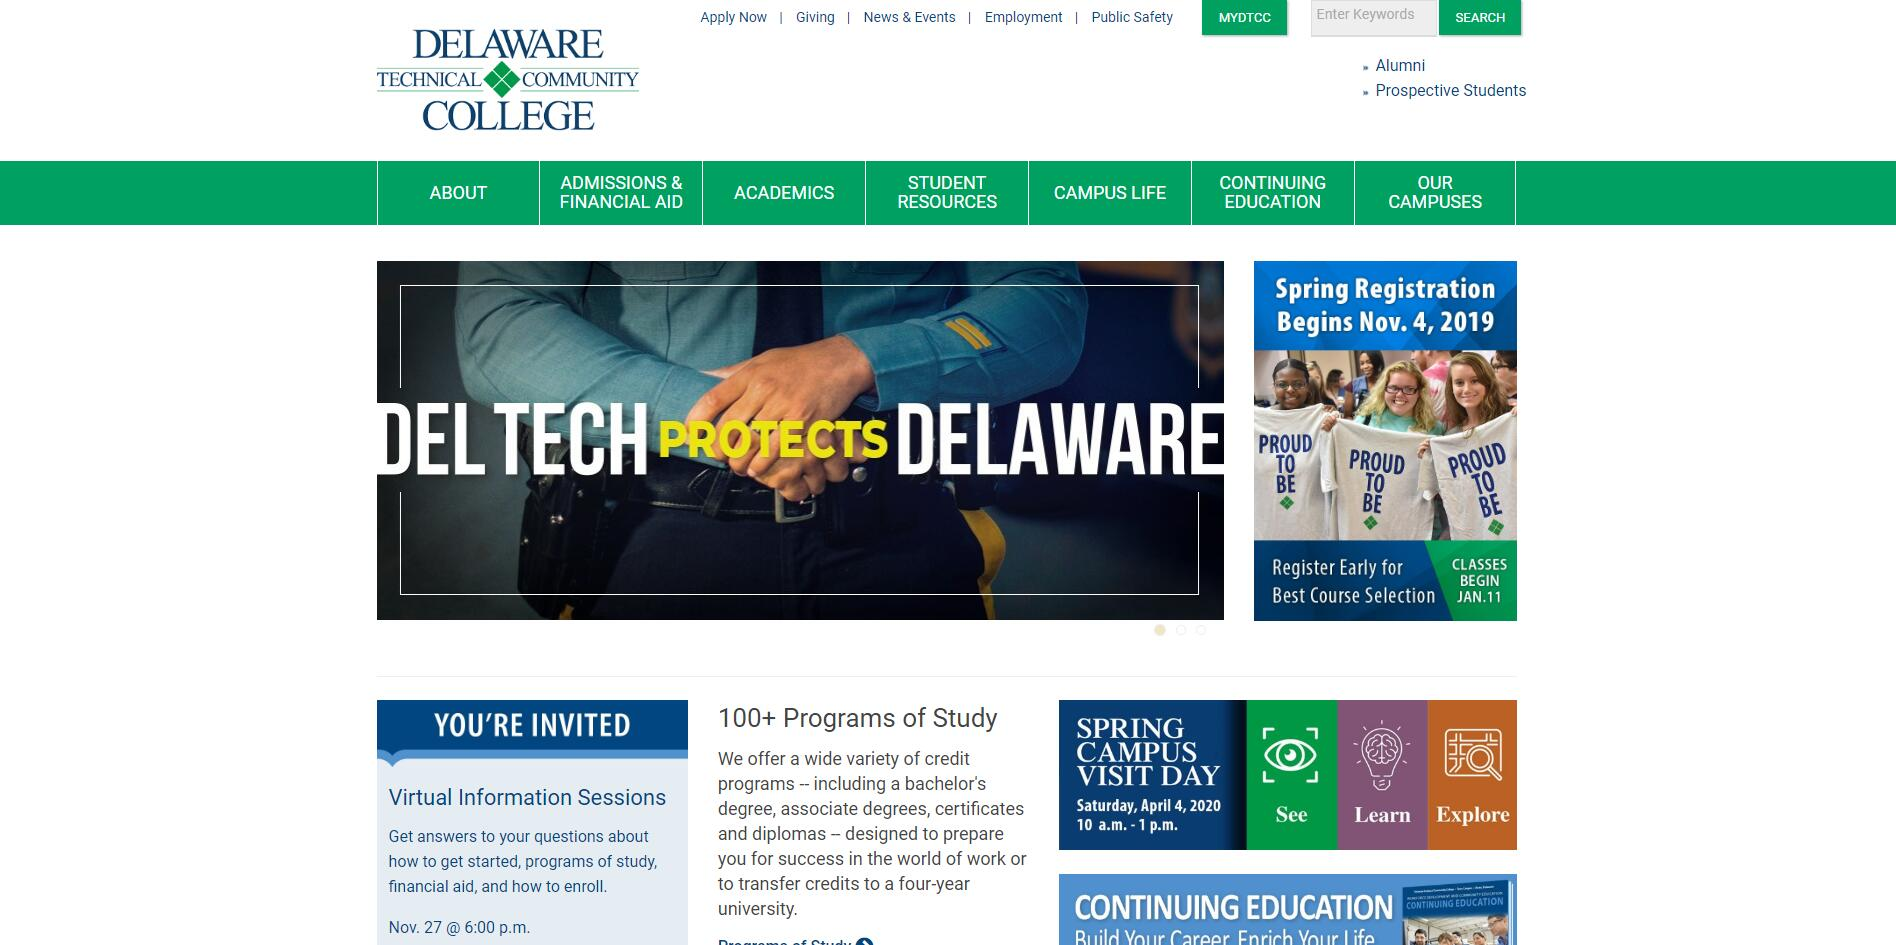 Delaware Technical and Community College-Stanton-Wilmington